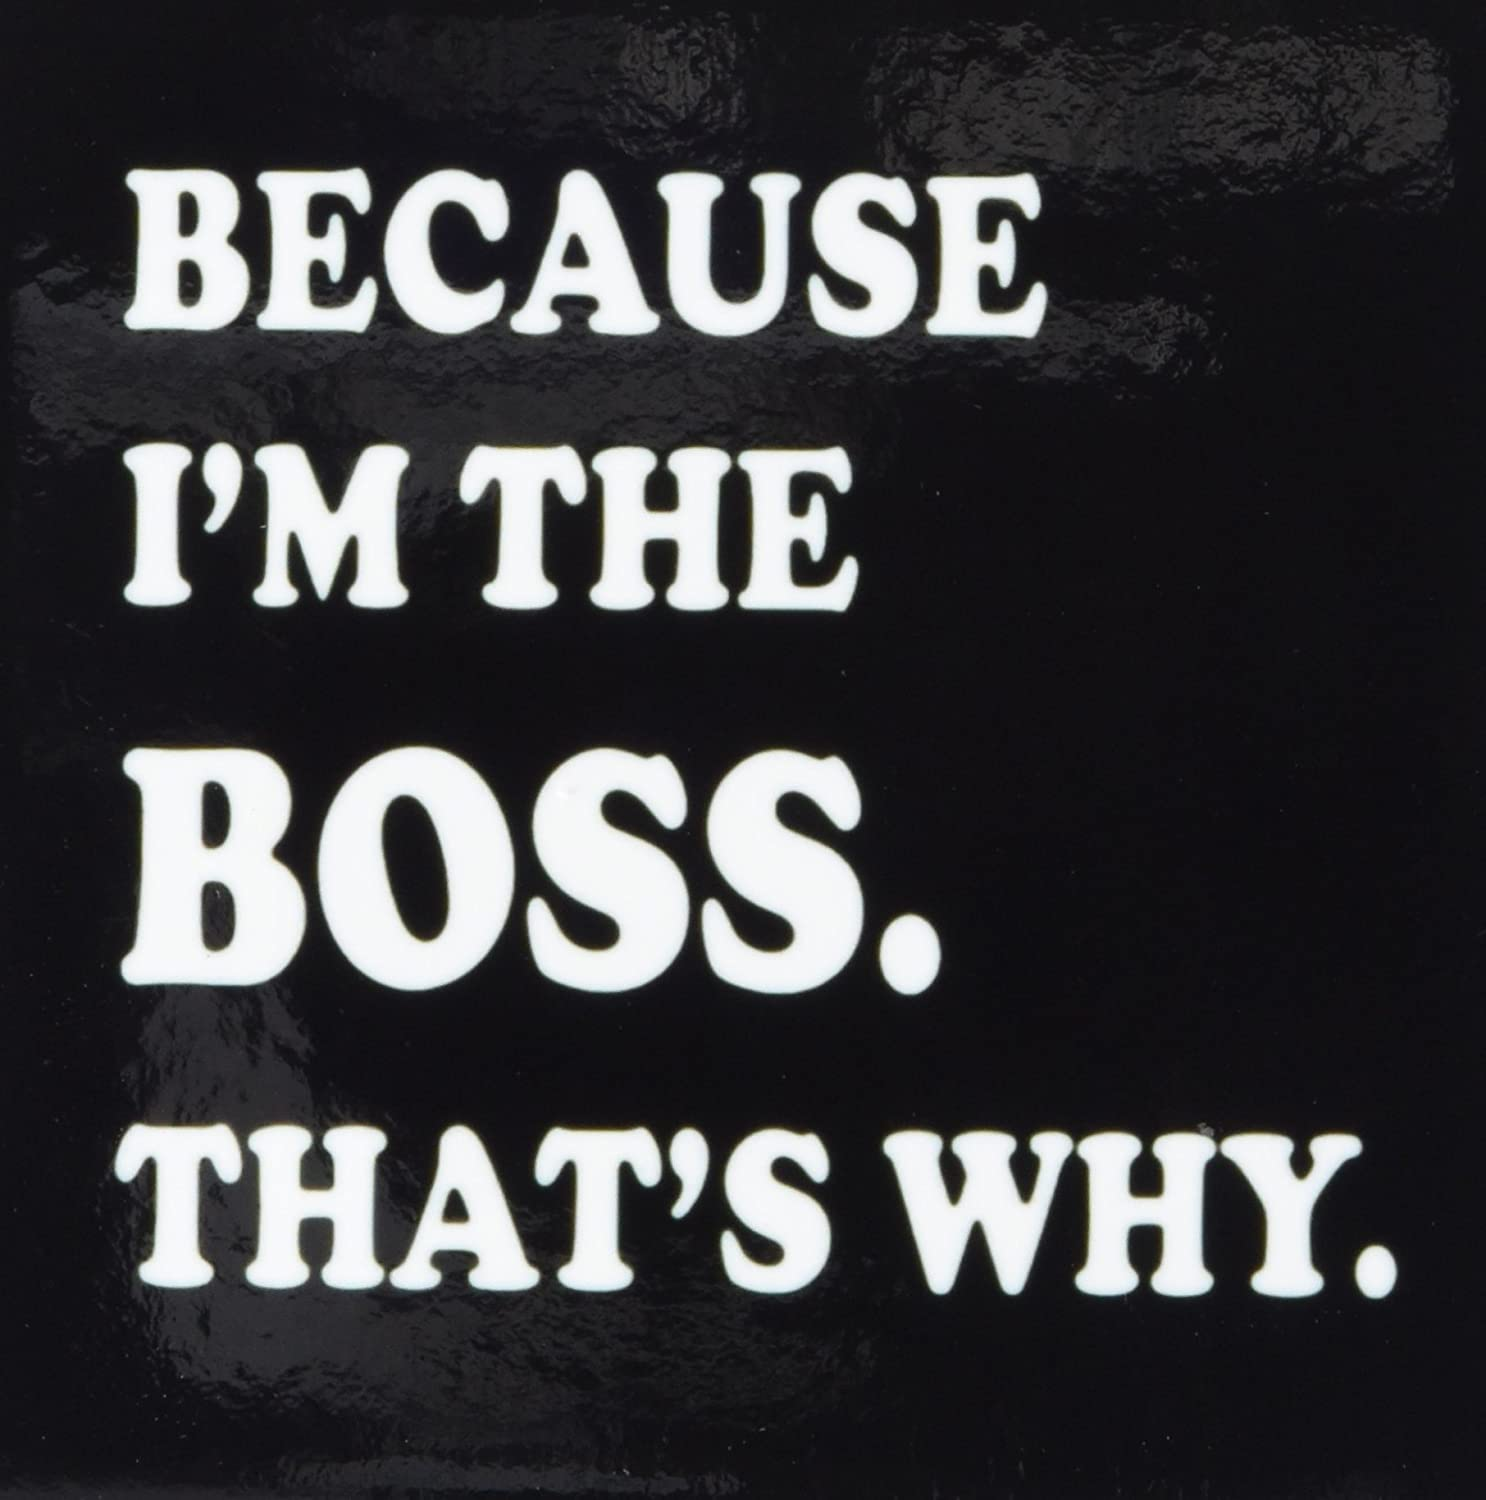 4 by 4-Inch Rikki Knight Because Im The Boss Thats Why on Black Design Art Ceramic Tile